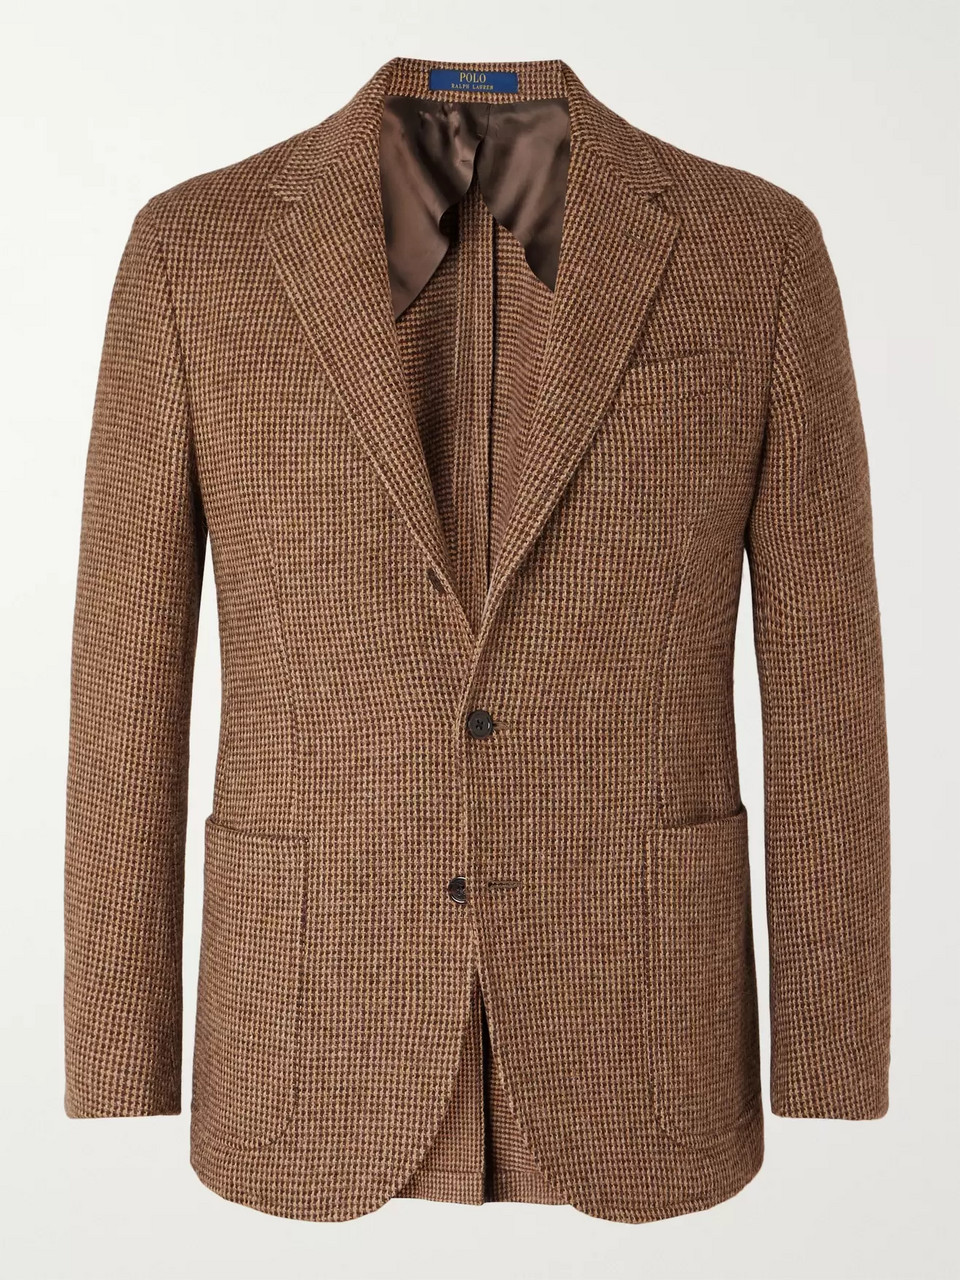 Polo Ralph Lauren Brown Slim-Fit Checked Wool and Alpaca-Blend Blazer